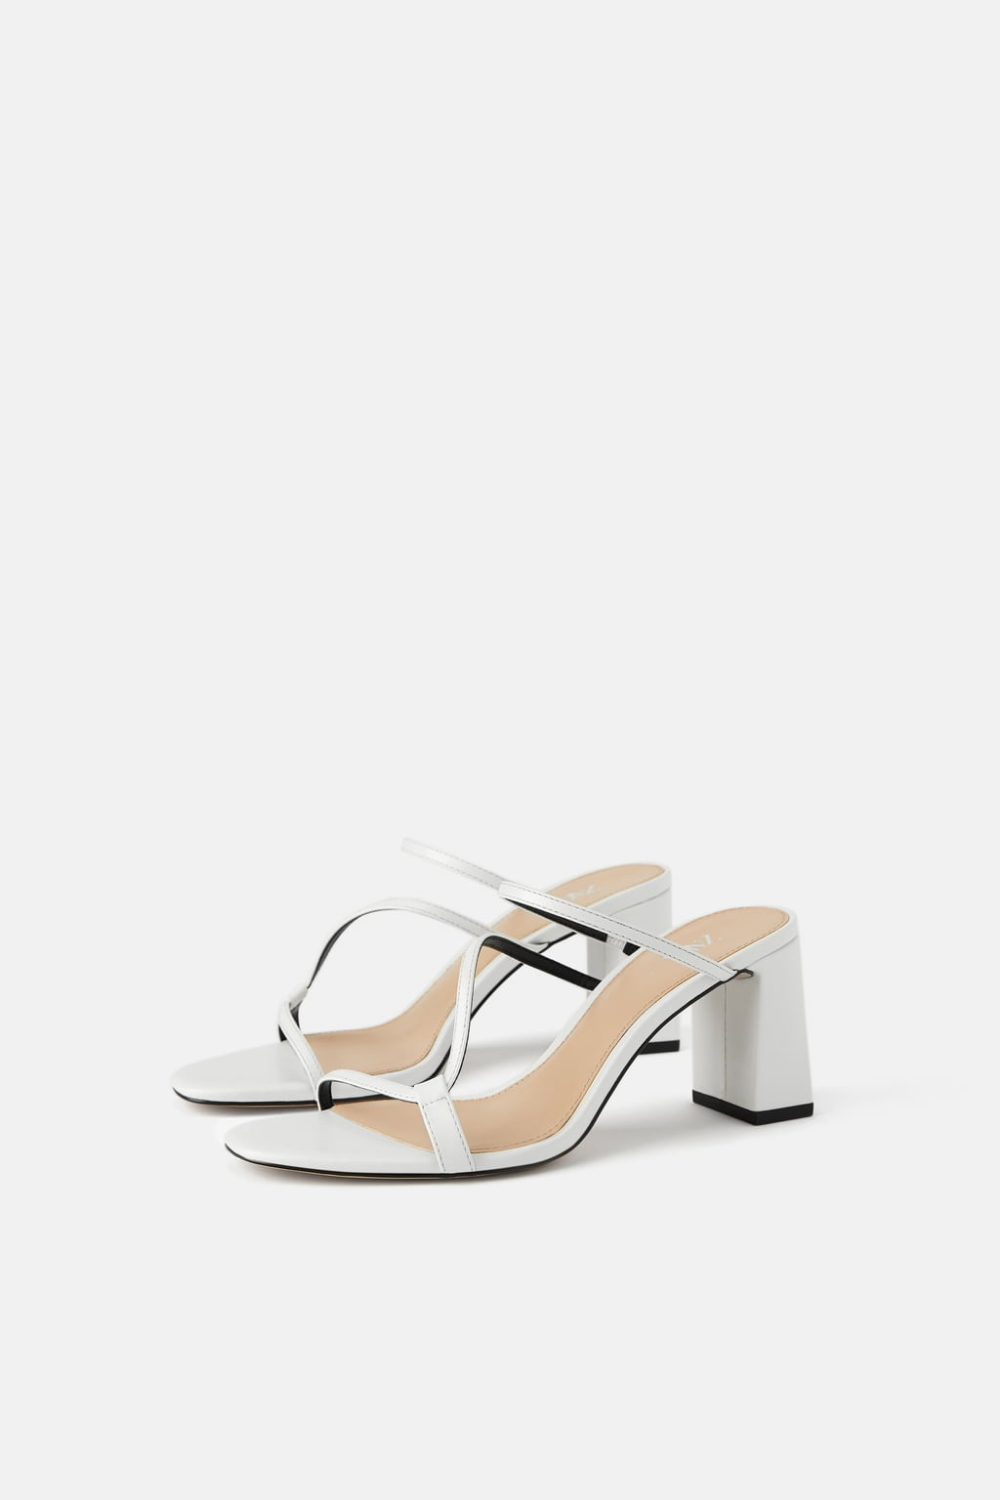 MID - HEEL MULES WITH ASYMMETRIC STRAPS